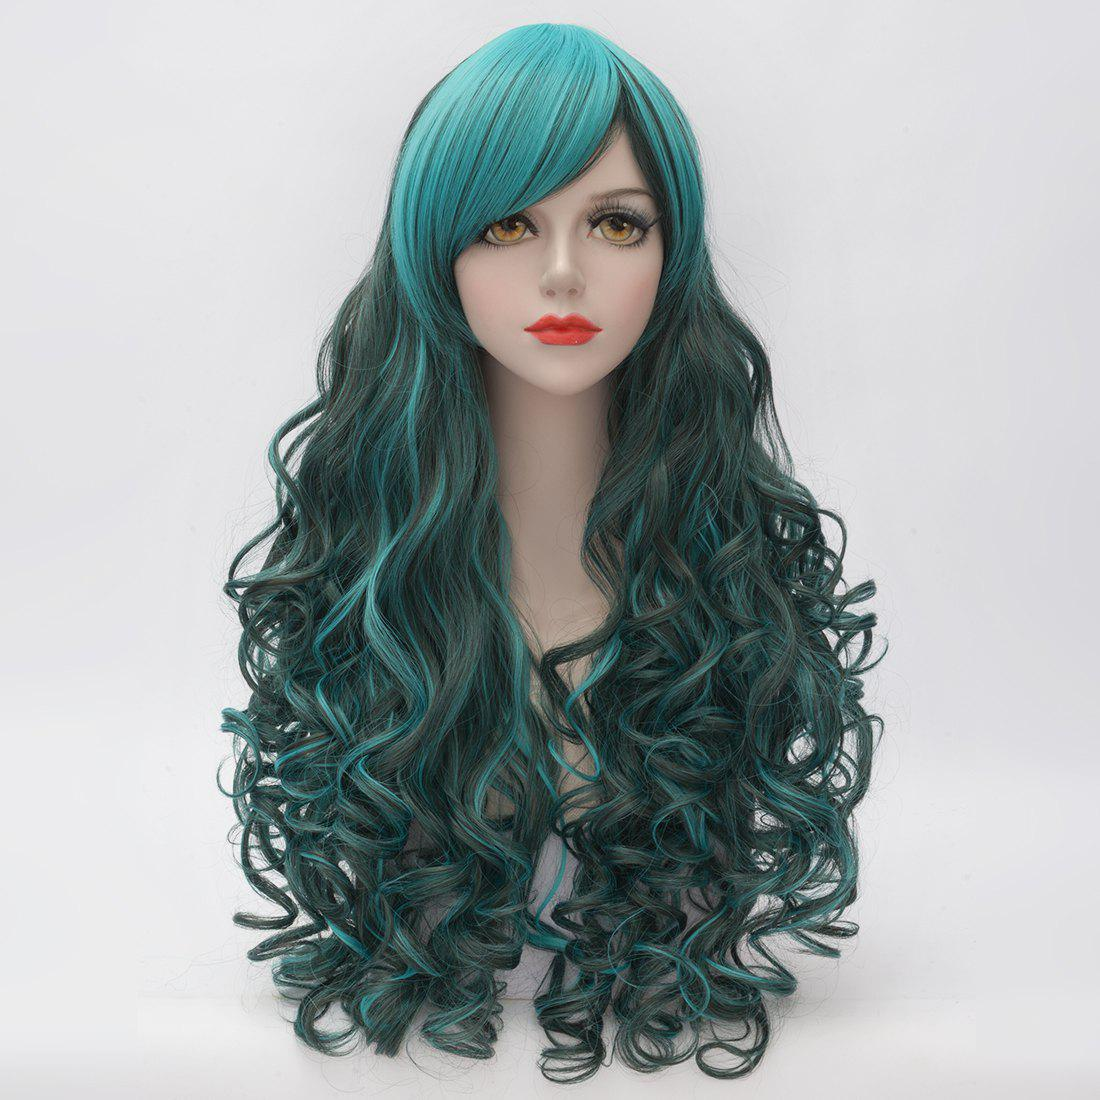 Heat Resistant Synthetic Fluffy Curly Stunning Highlight Long Cosplay Side Bang Capless Wig For Women free shipping hot heat resistant party hair new wig cosplay lolita long mintcream curly heat split type wig